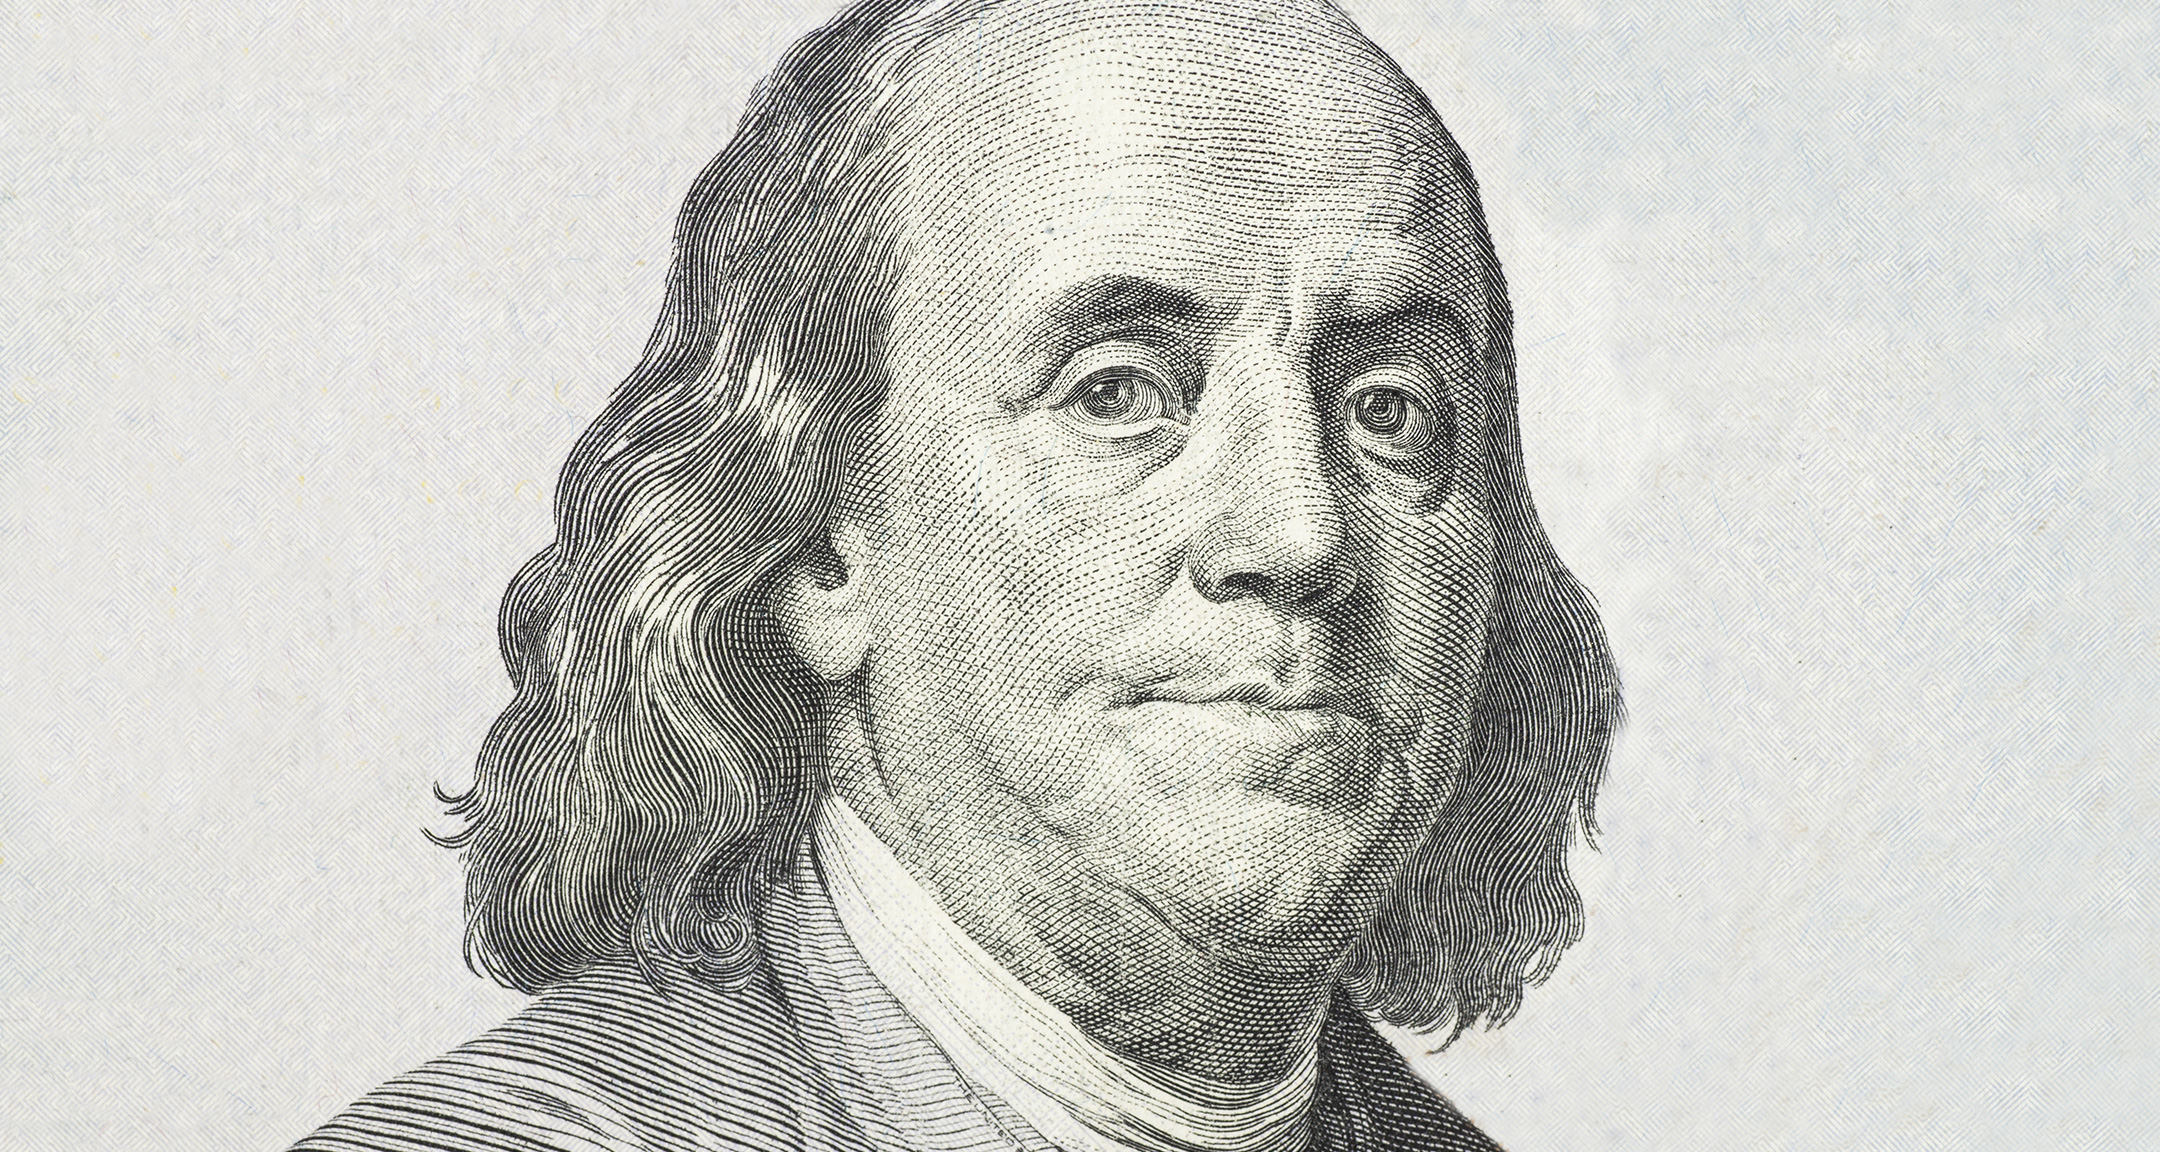 benjamin franklin s art of virtue a user s guide e ostadelahi com benjamin franklin